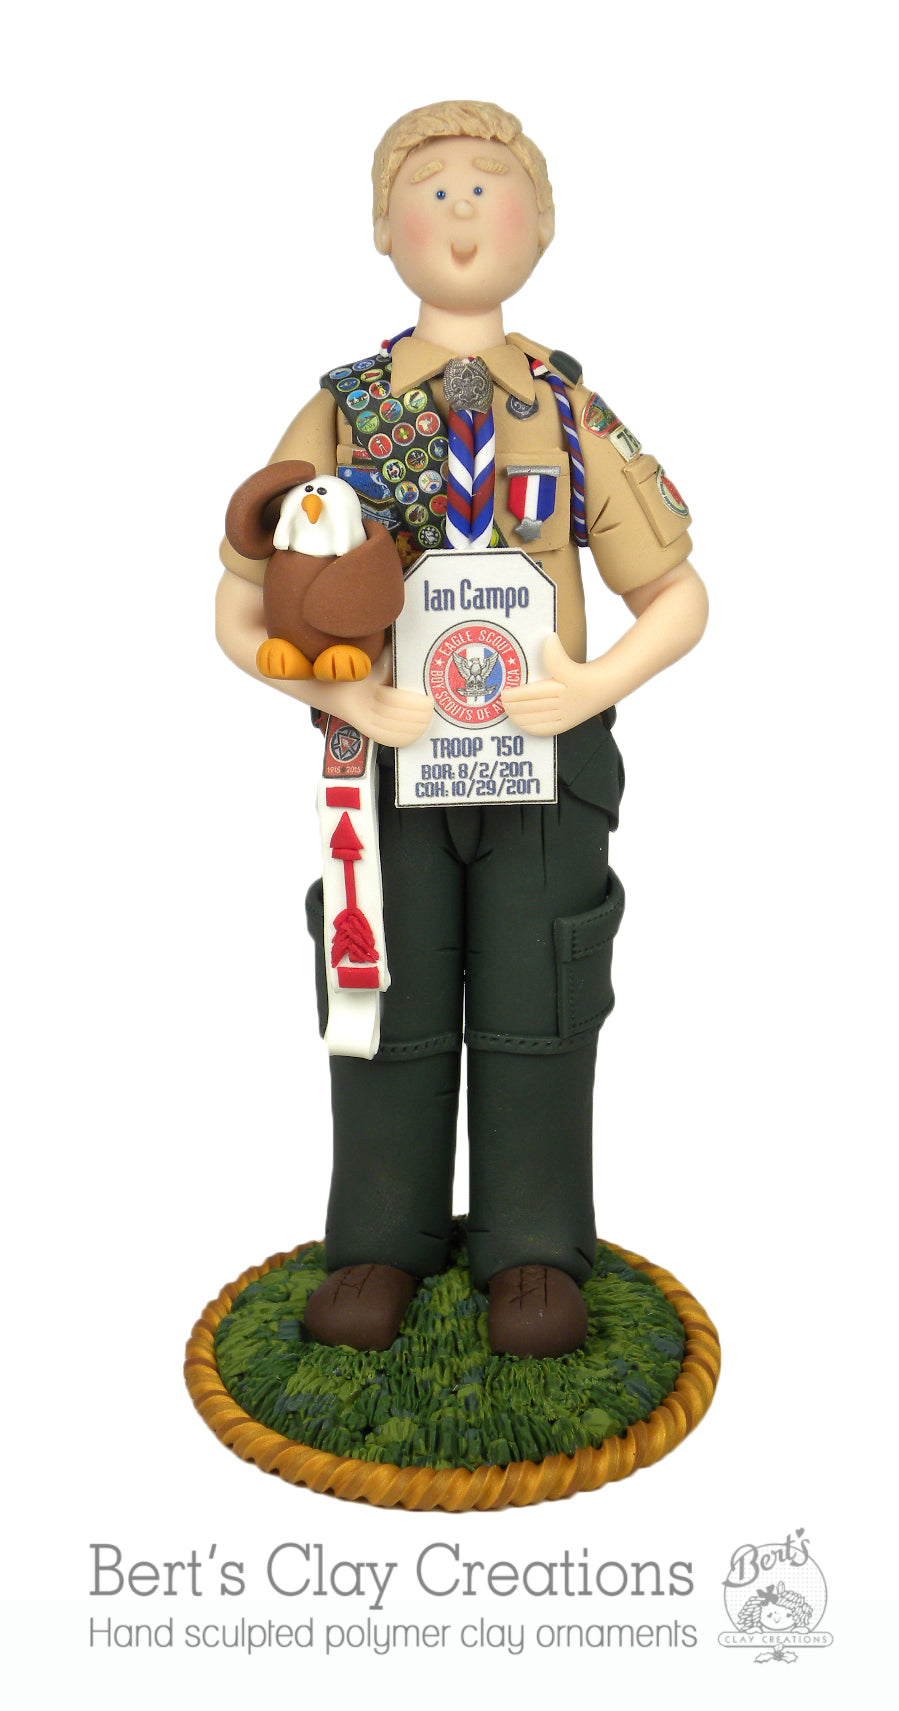 CUSTOM Eagle Scout Cake Topper Submission Quote - Bert's Clay Creations